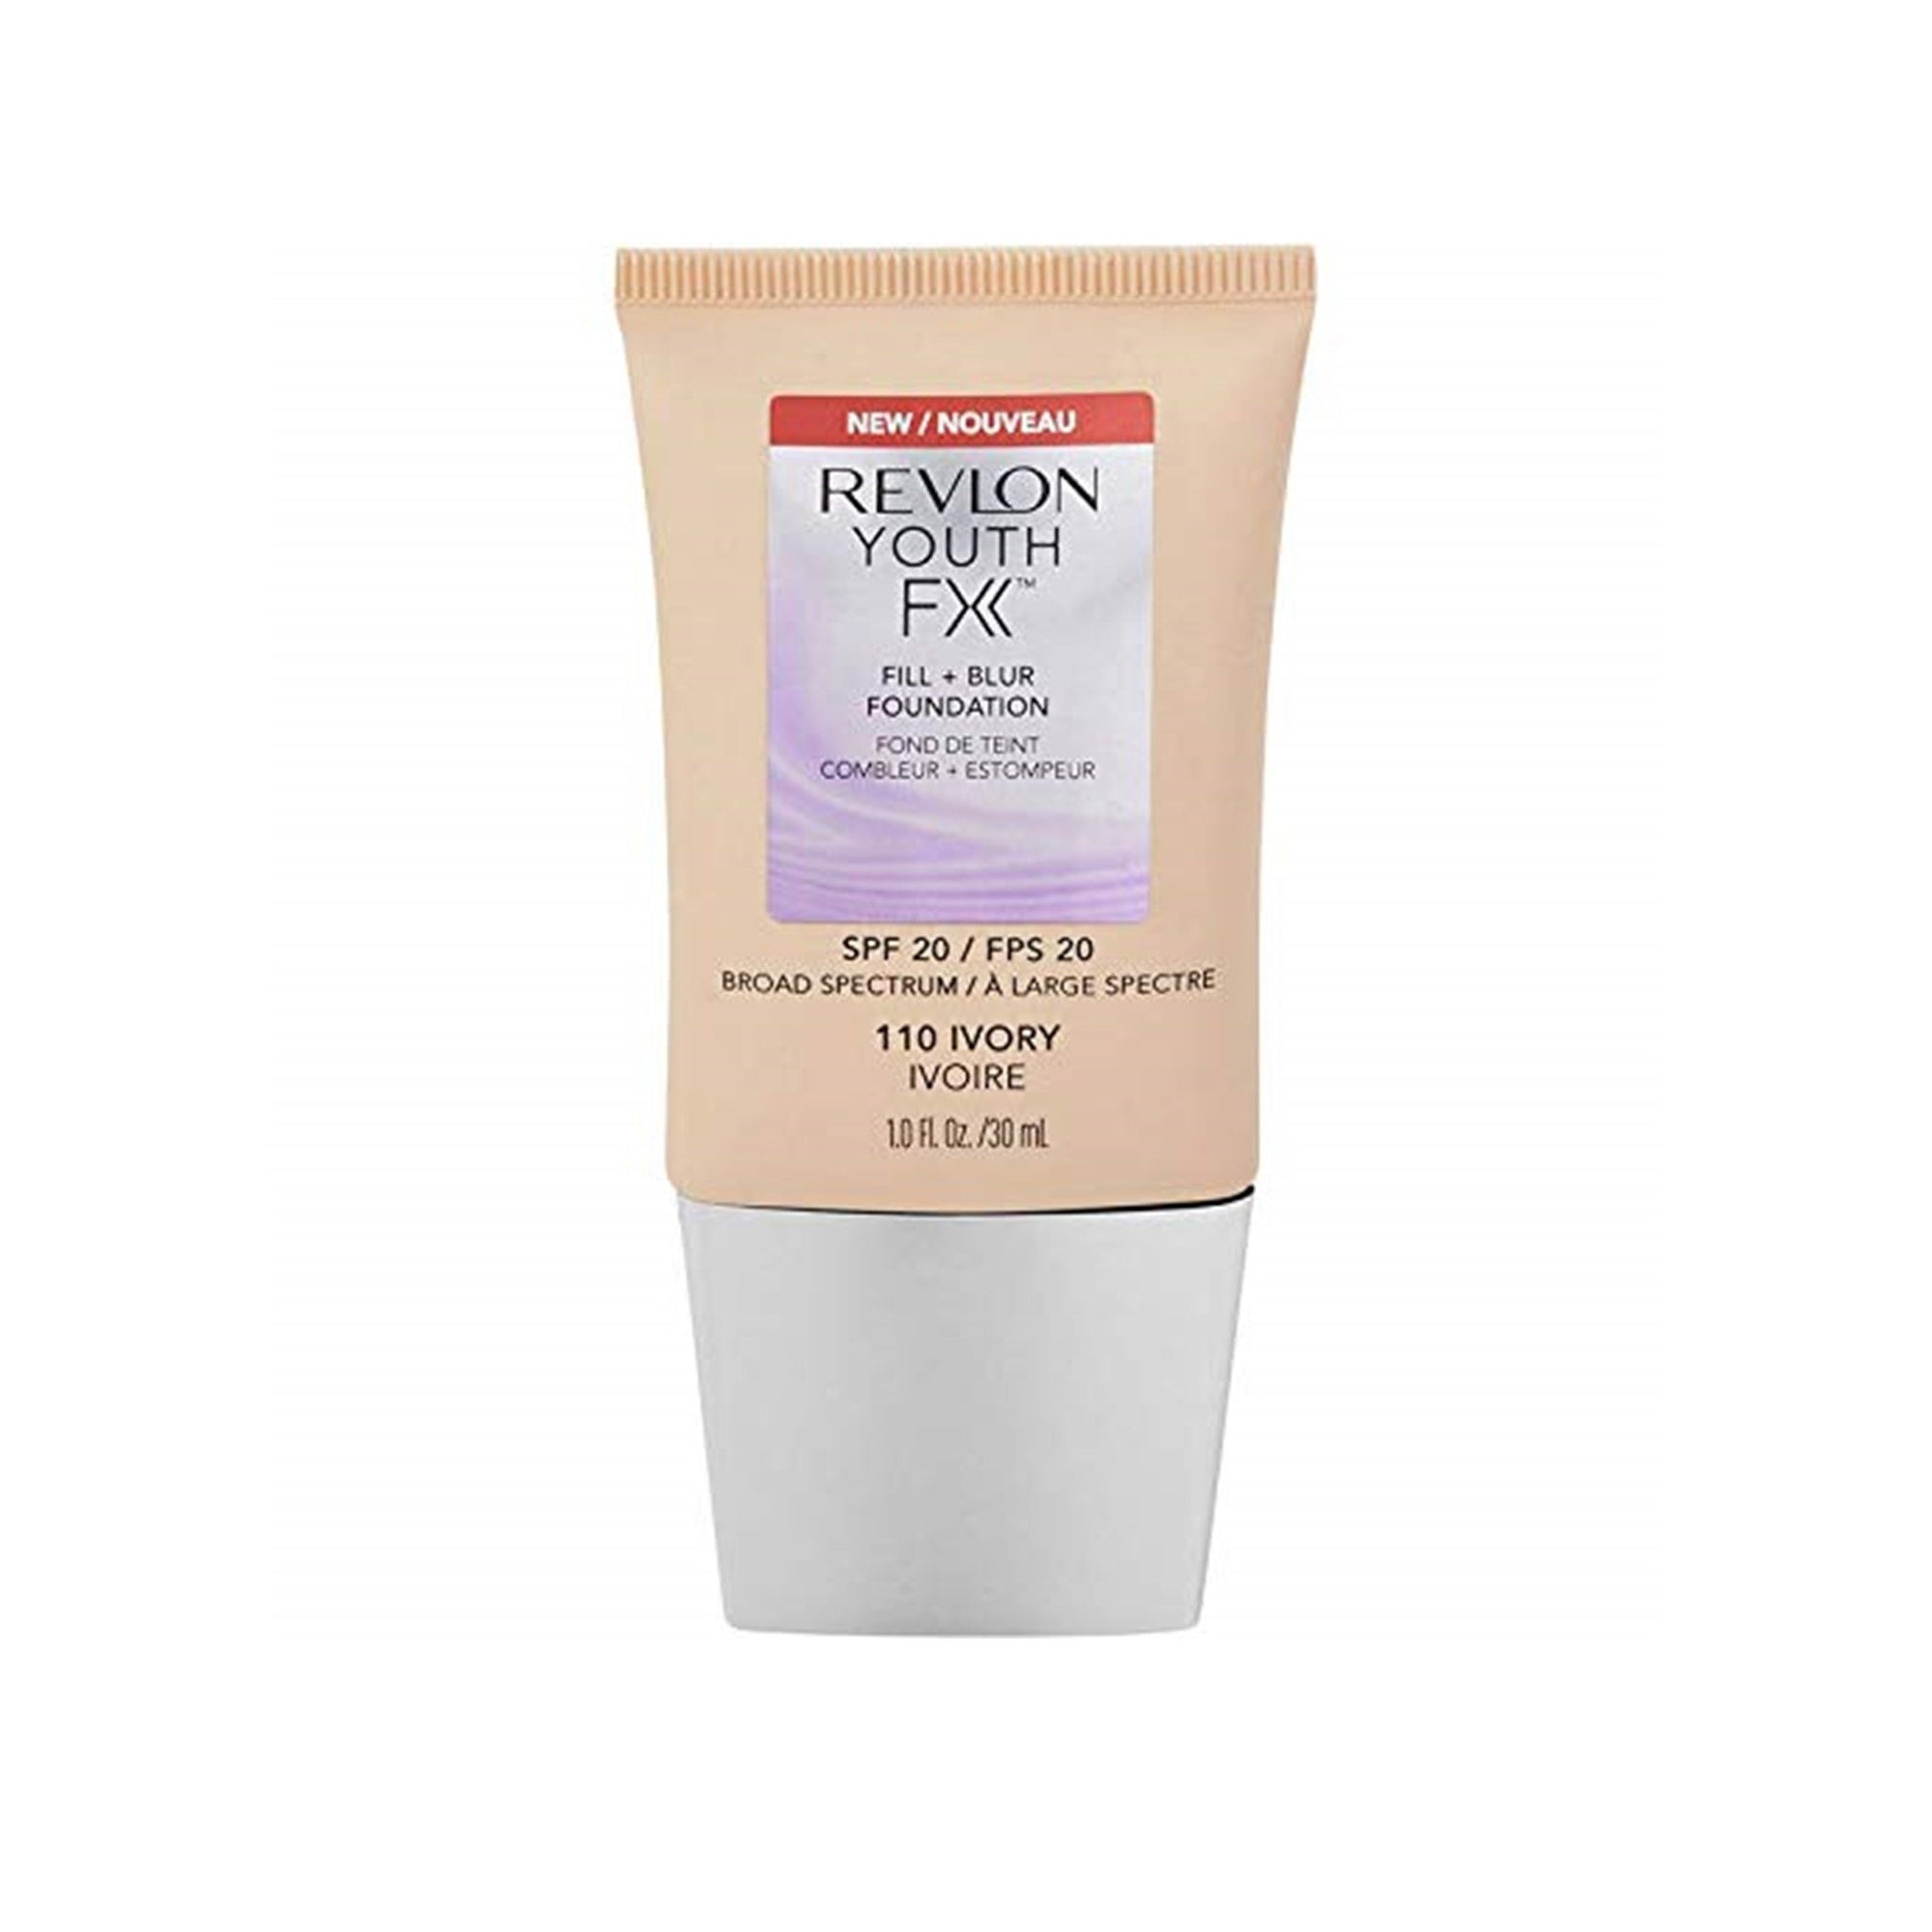 Revlon Youth Fx Fill + Blur Foundation